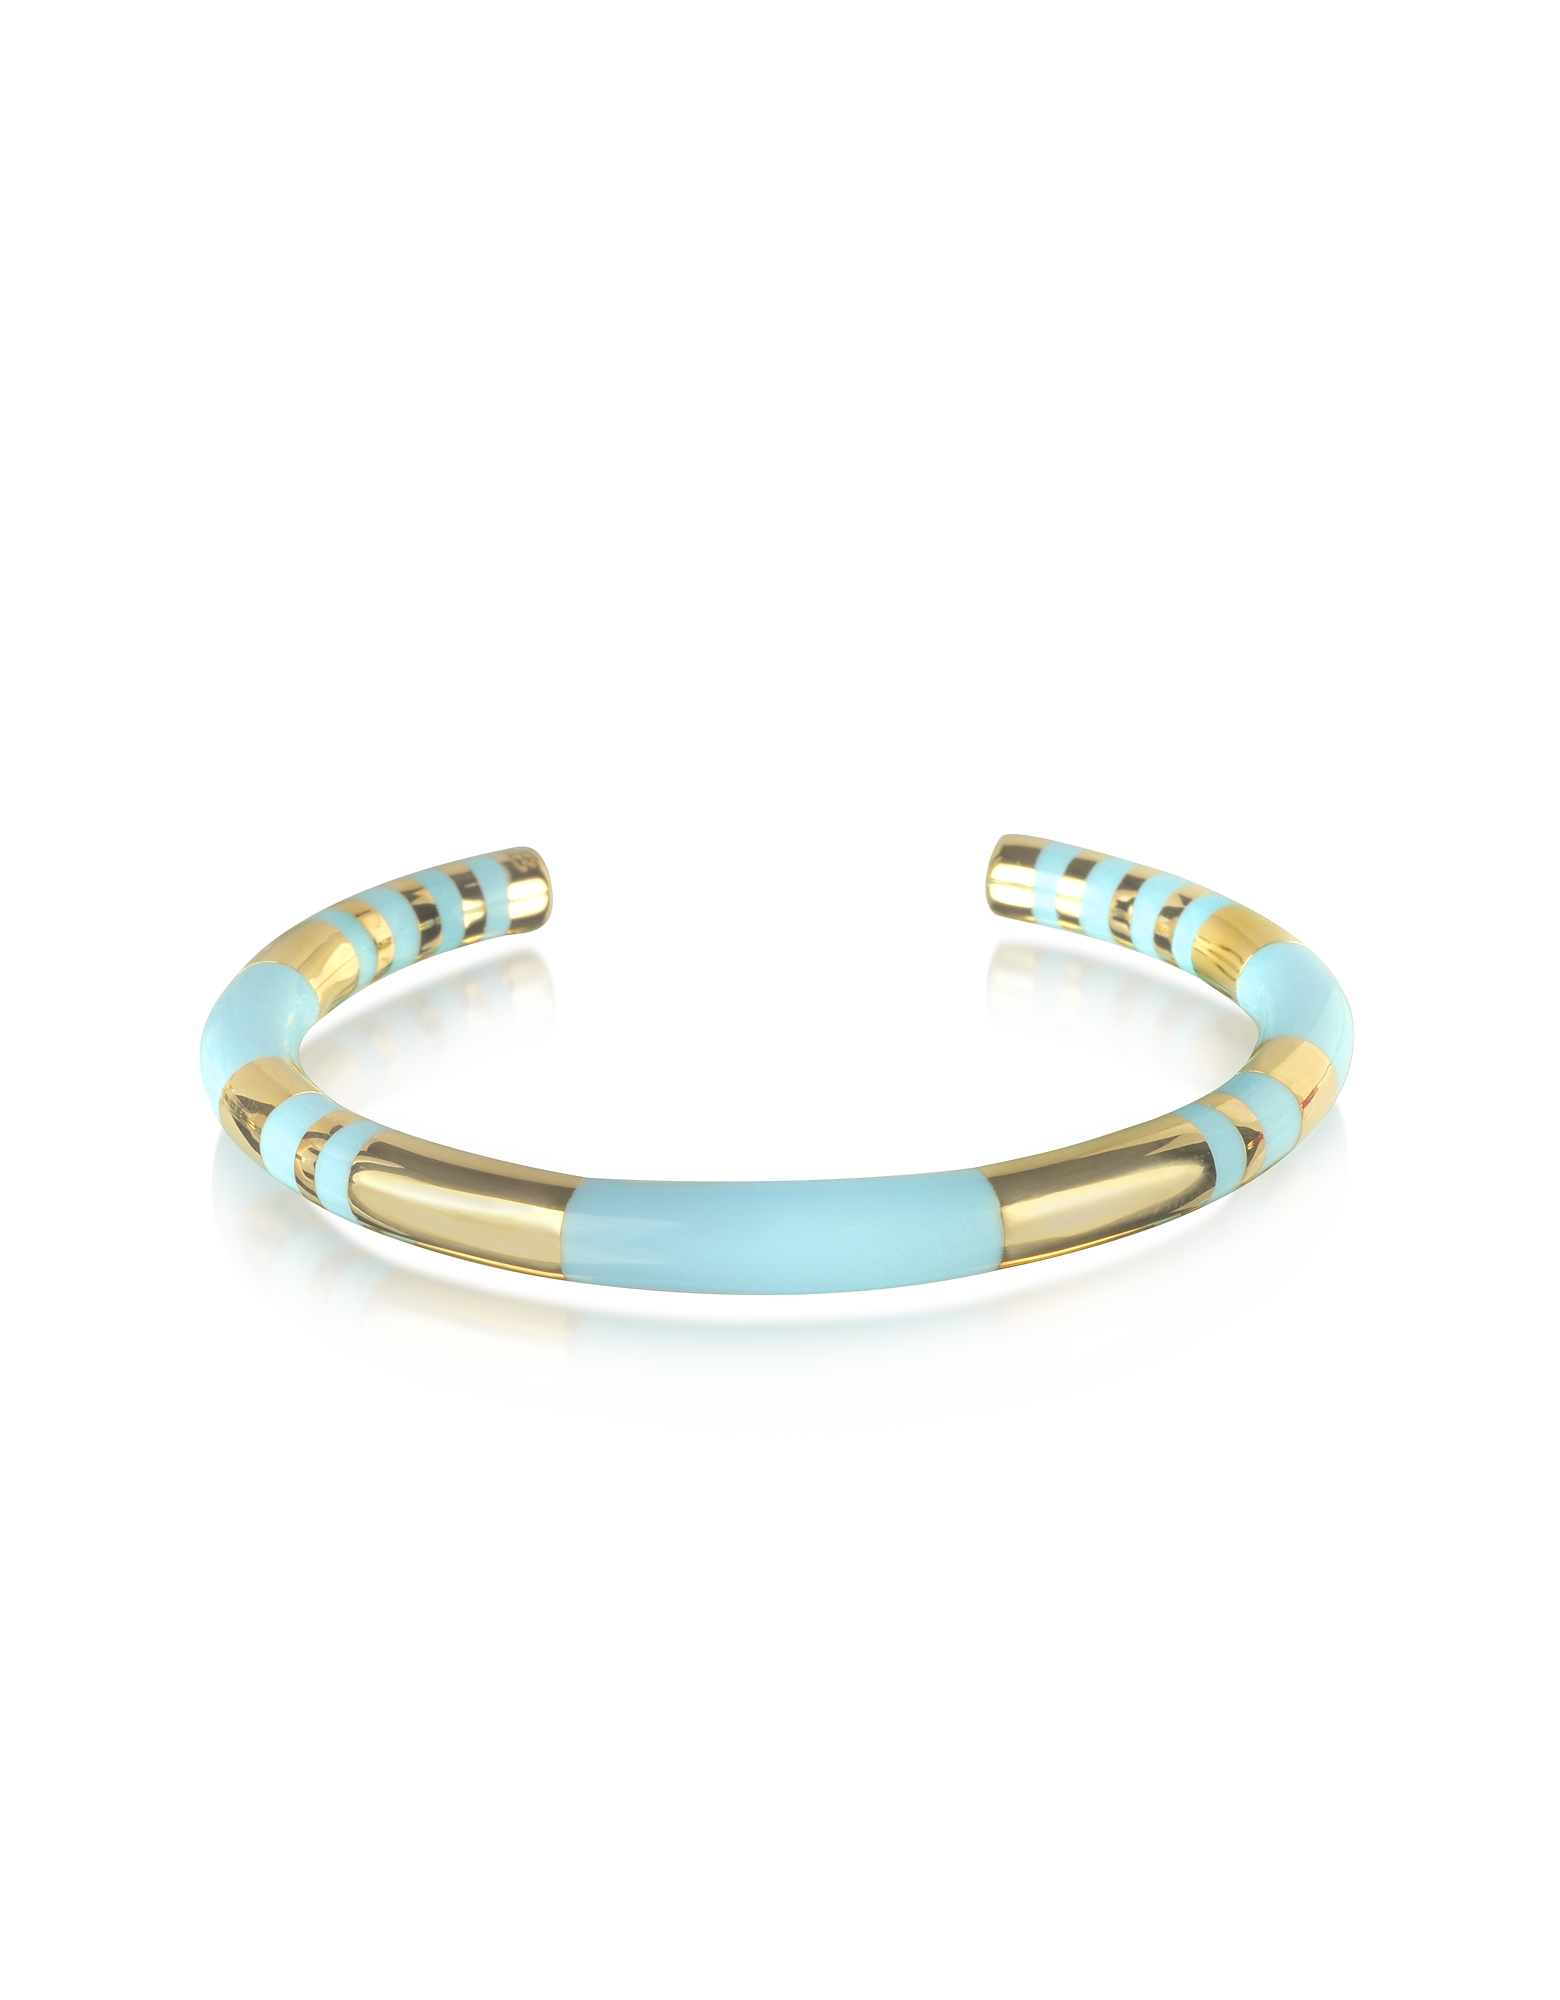 Image of Aurelie Bidermann Designer Bracelets, 18K gold-plated & Sky Blue Enamel Resin Positano Striped Bangle